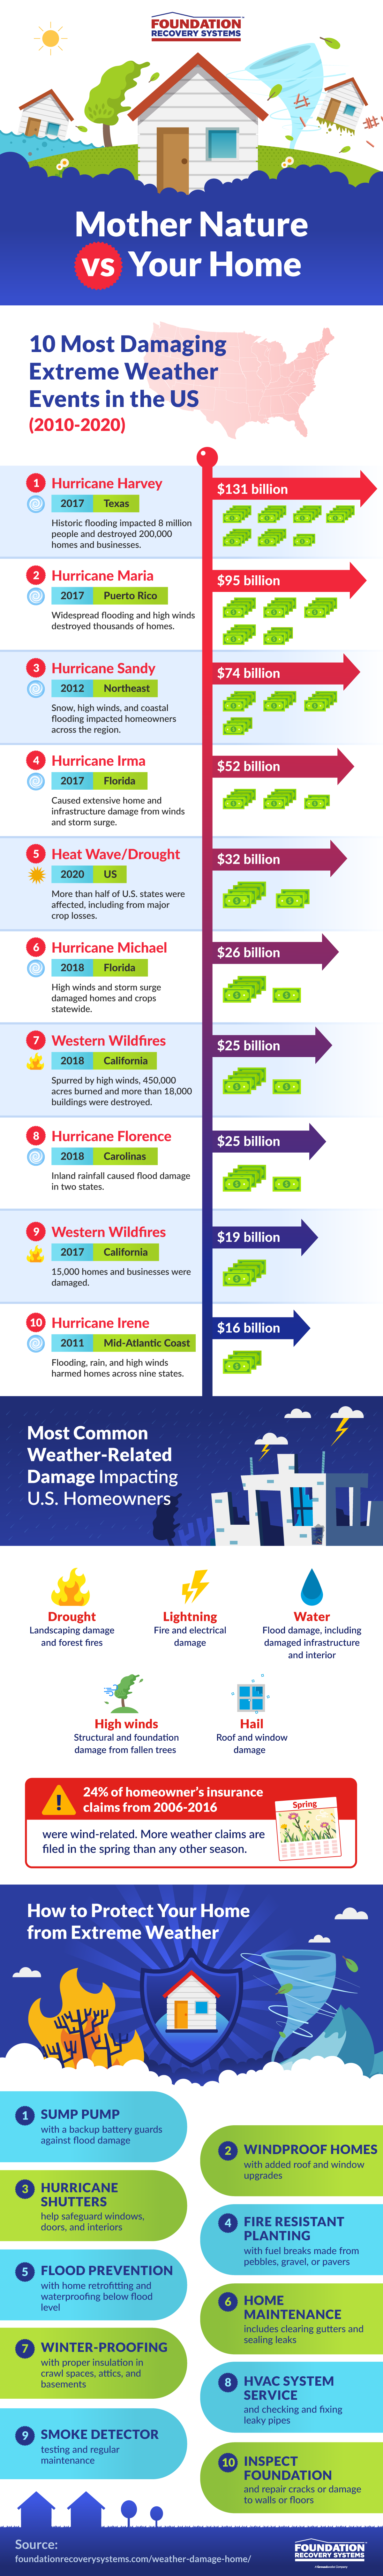 Mother Nature vs. Your Home #infographic